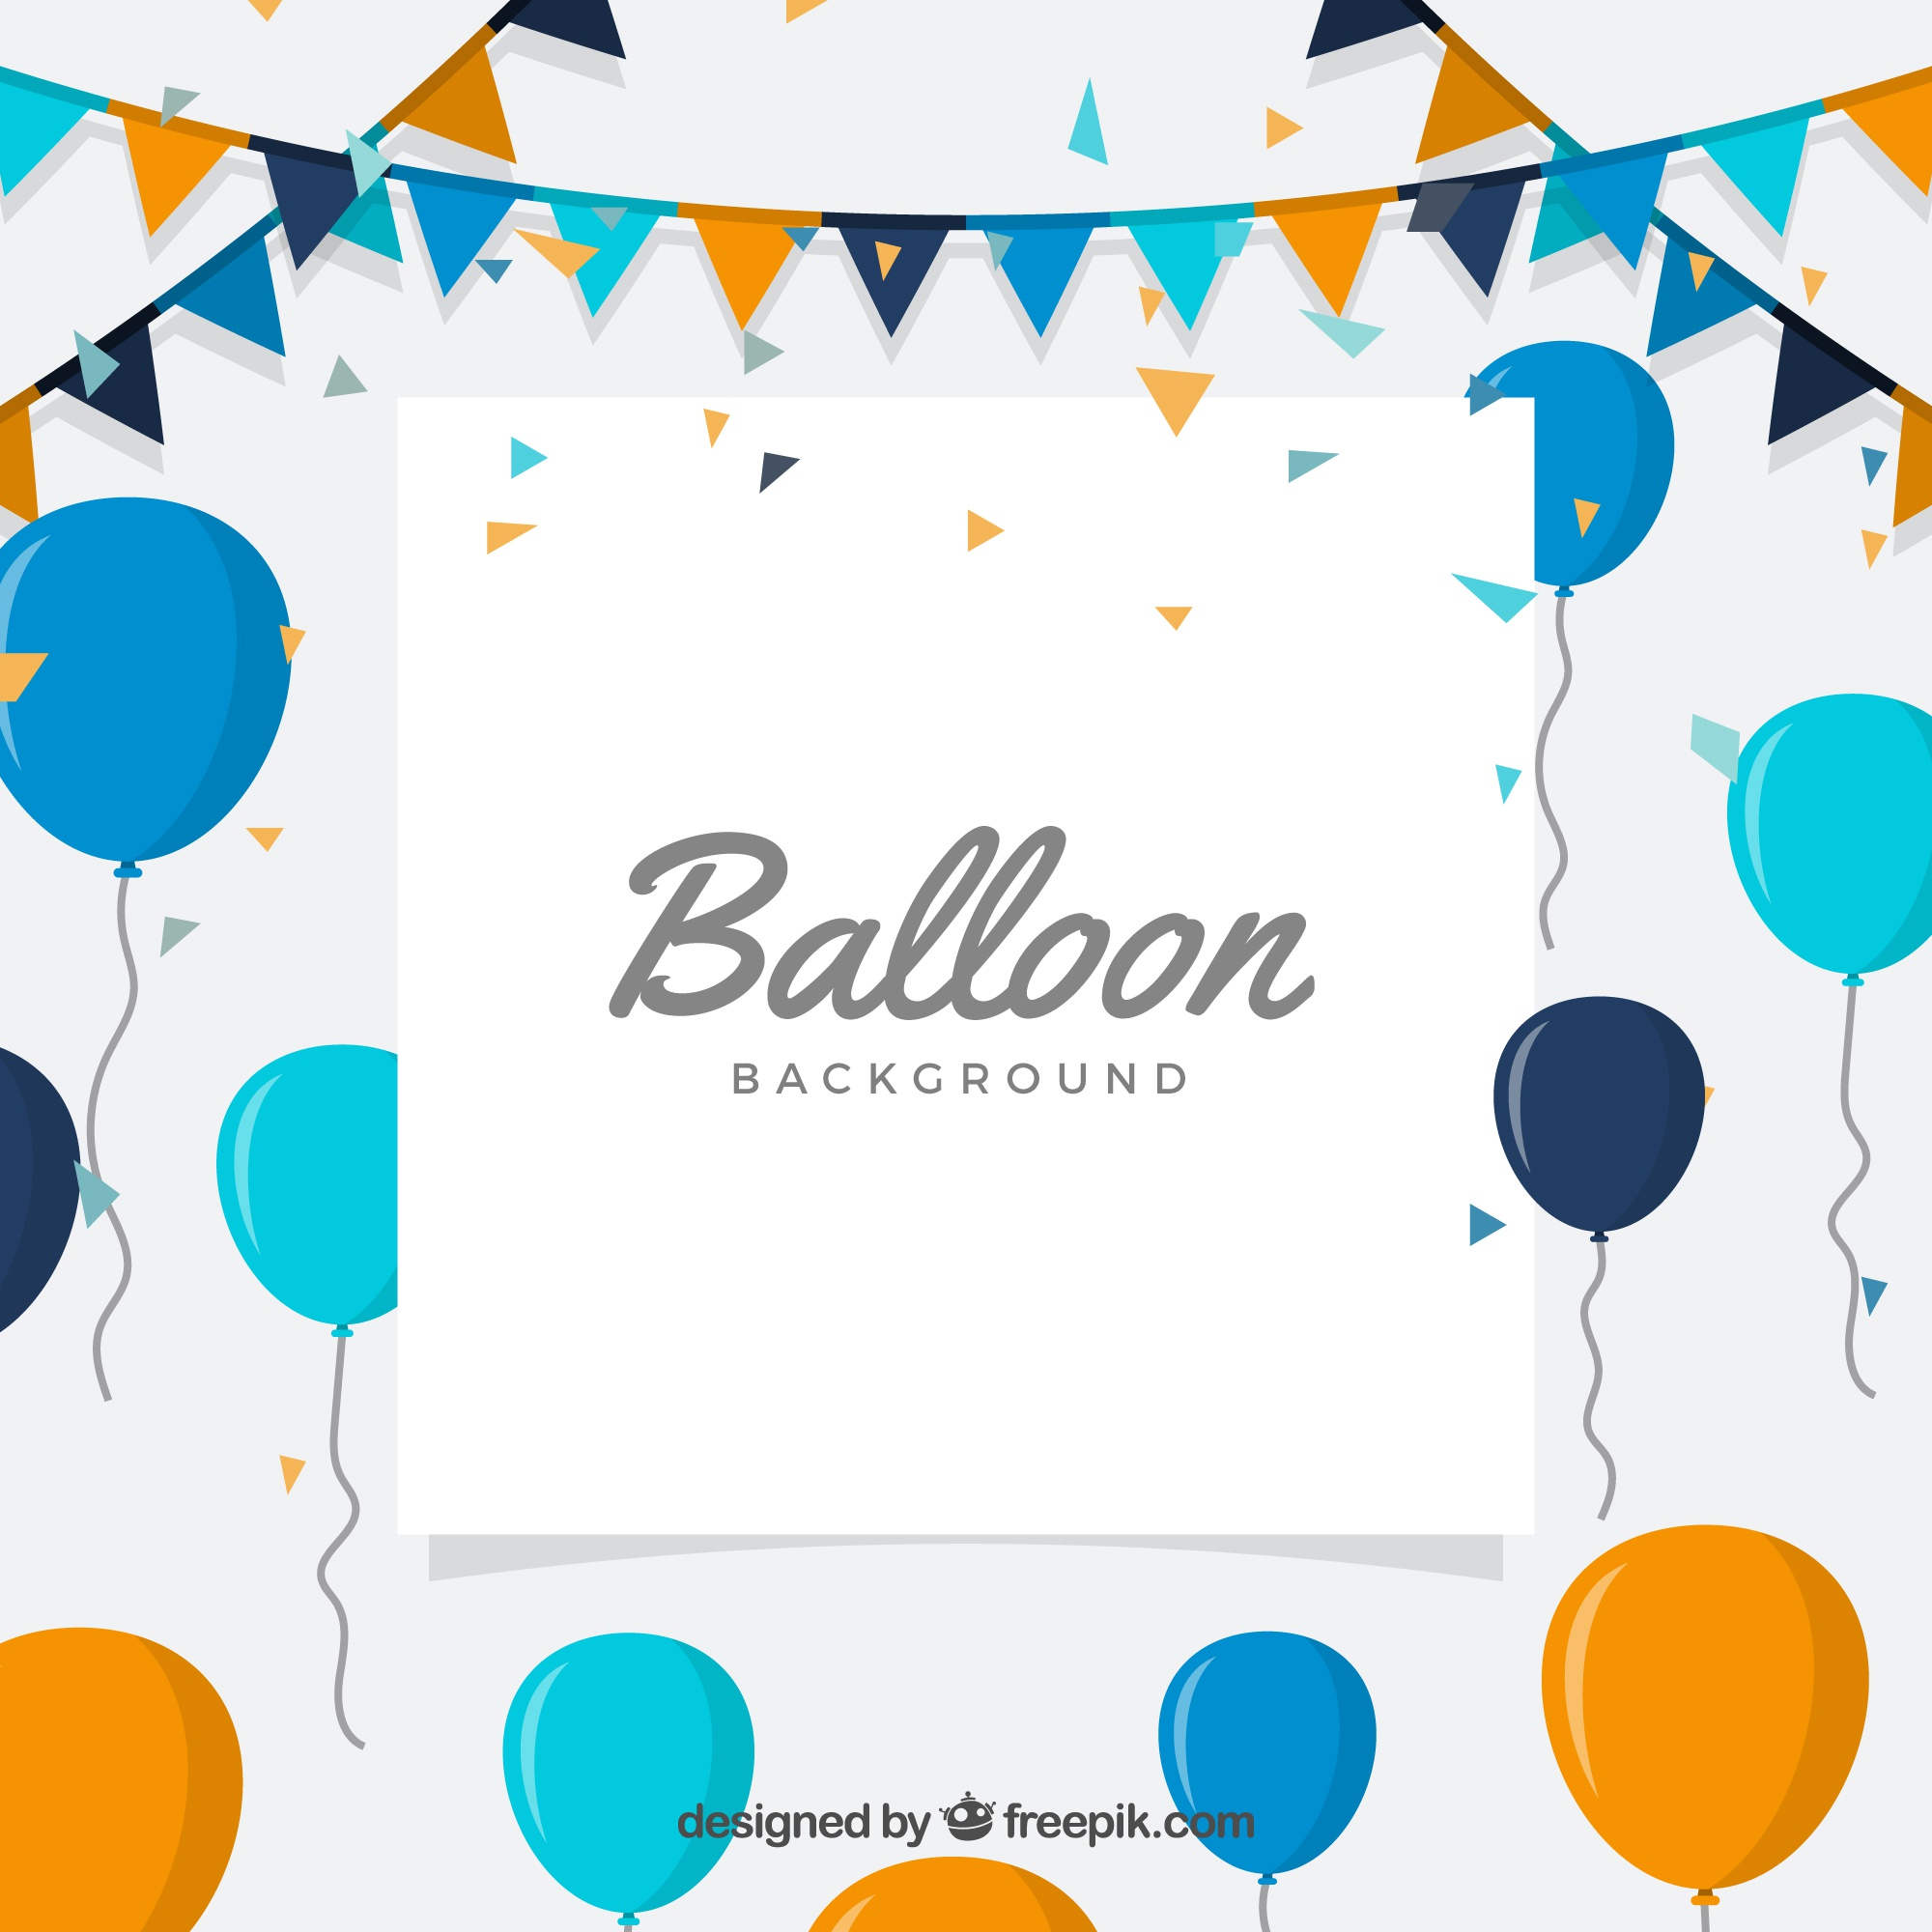 Birhtday balloons background to celebrate